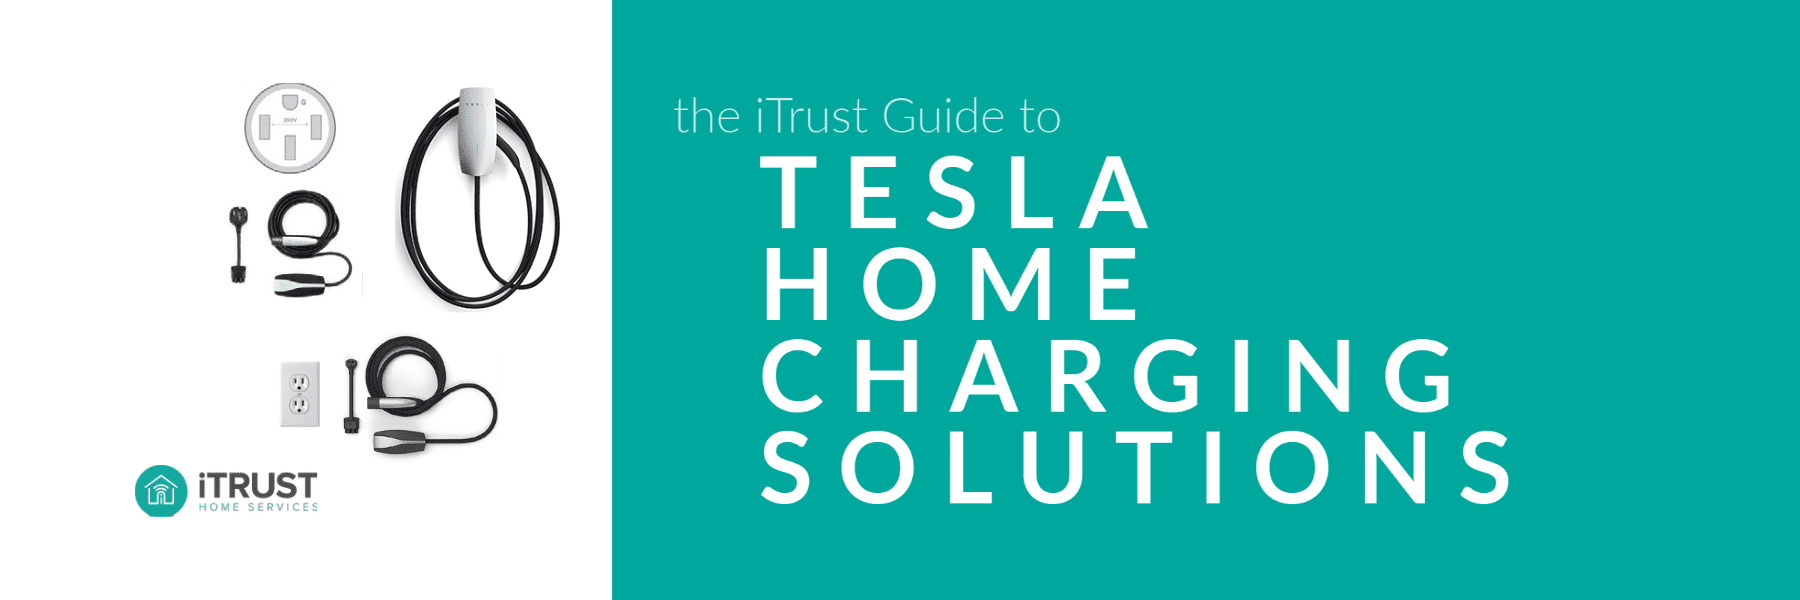 Tesla Home Charging Solutions